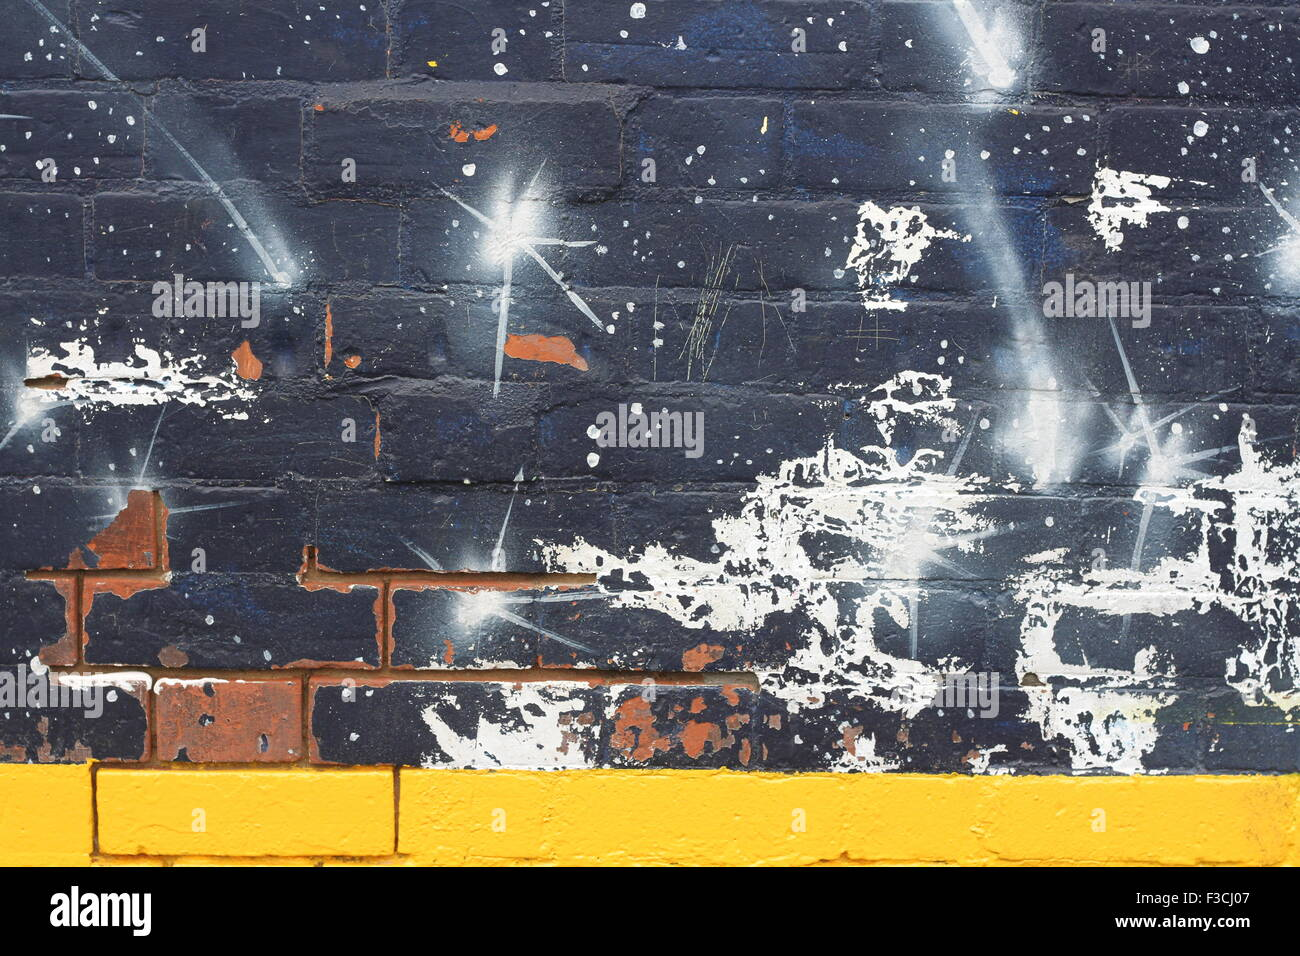 Spray paint wall - Stock Image